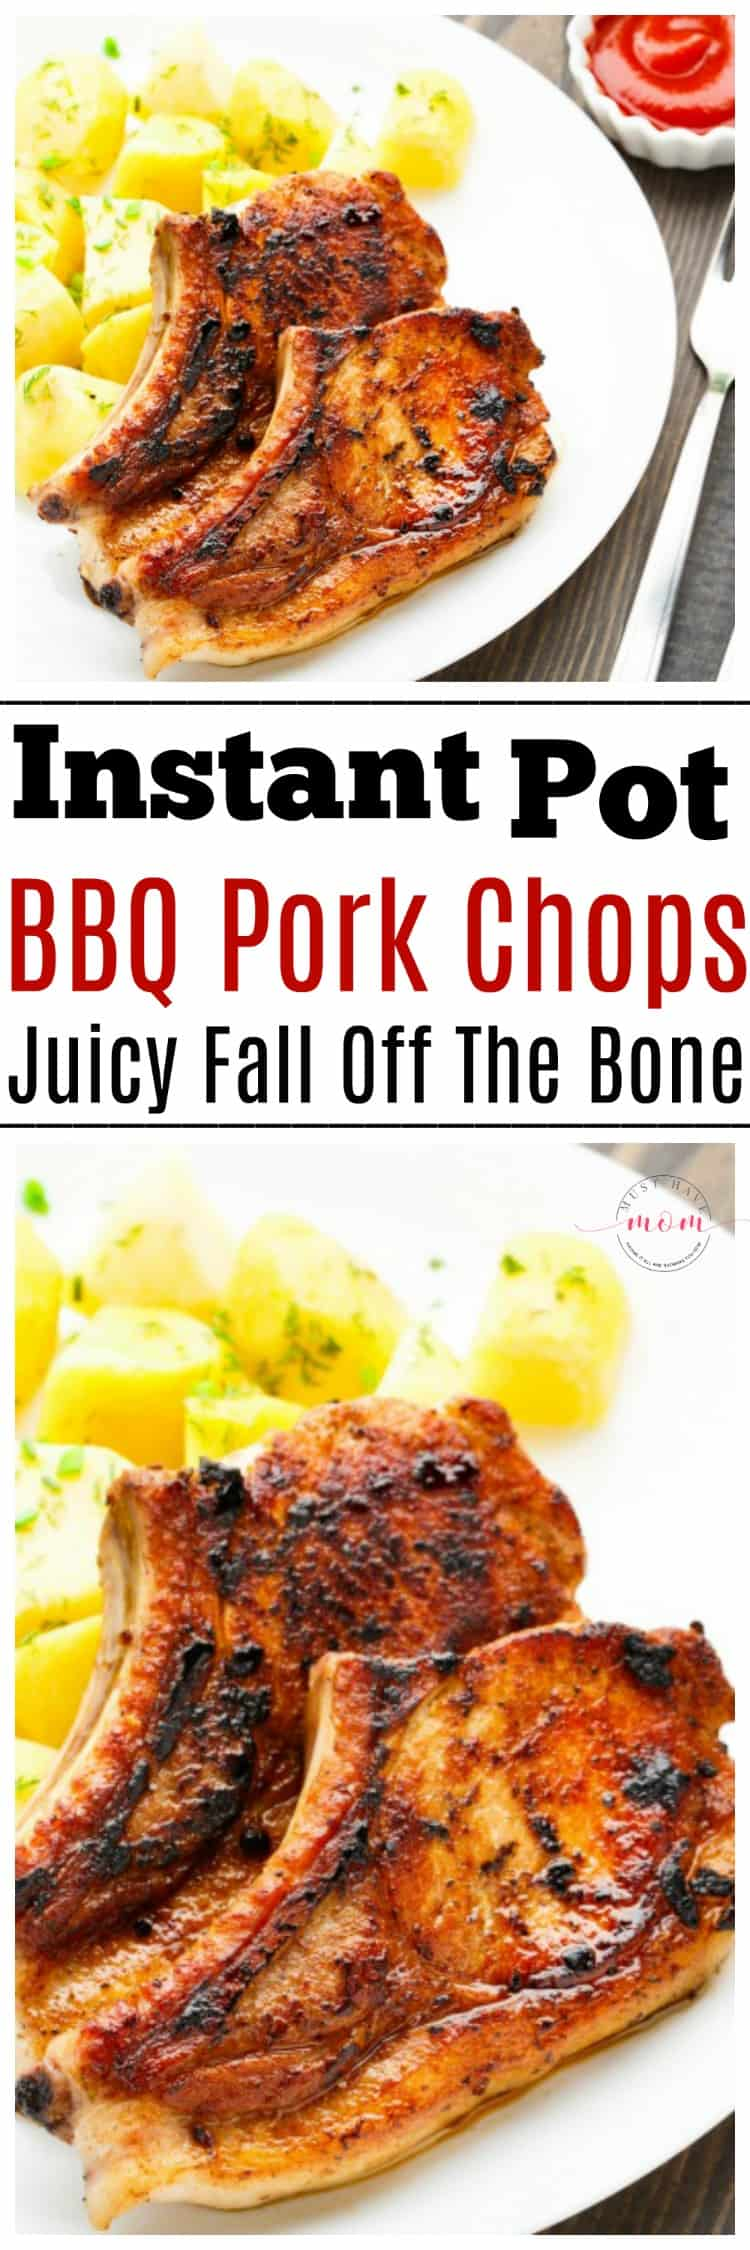 Instant Pot Bbq Pork Chops Recipe Easy And They Fall Off The